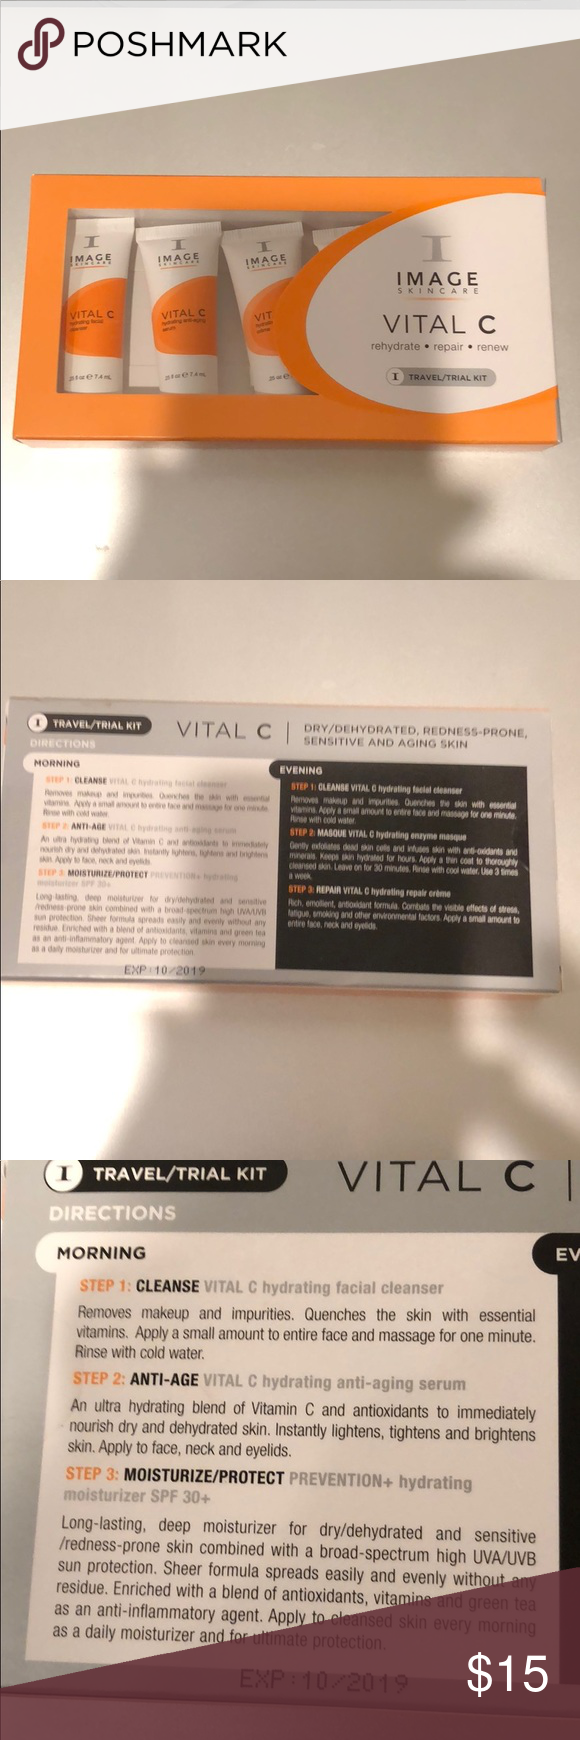 Image Skincare Vital C Travel Kit Nwt My Posh Closet Pinterest